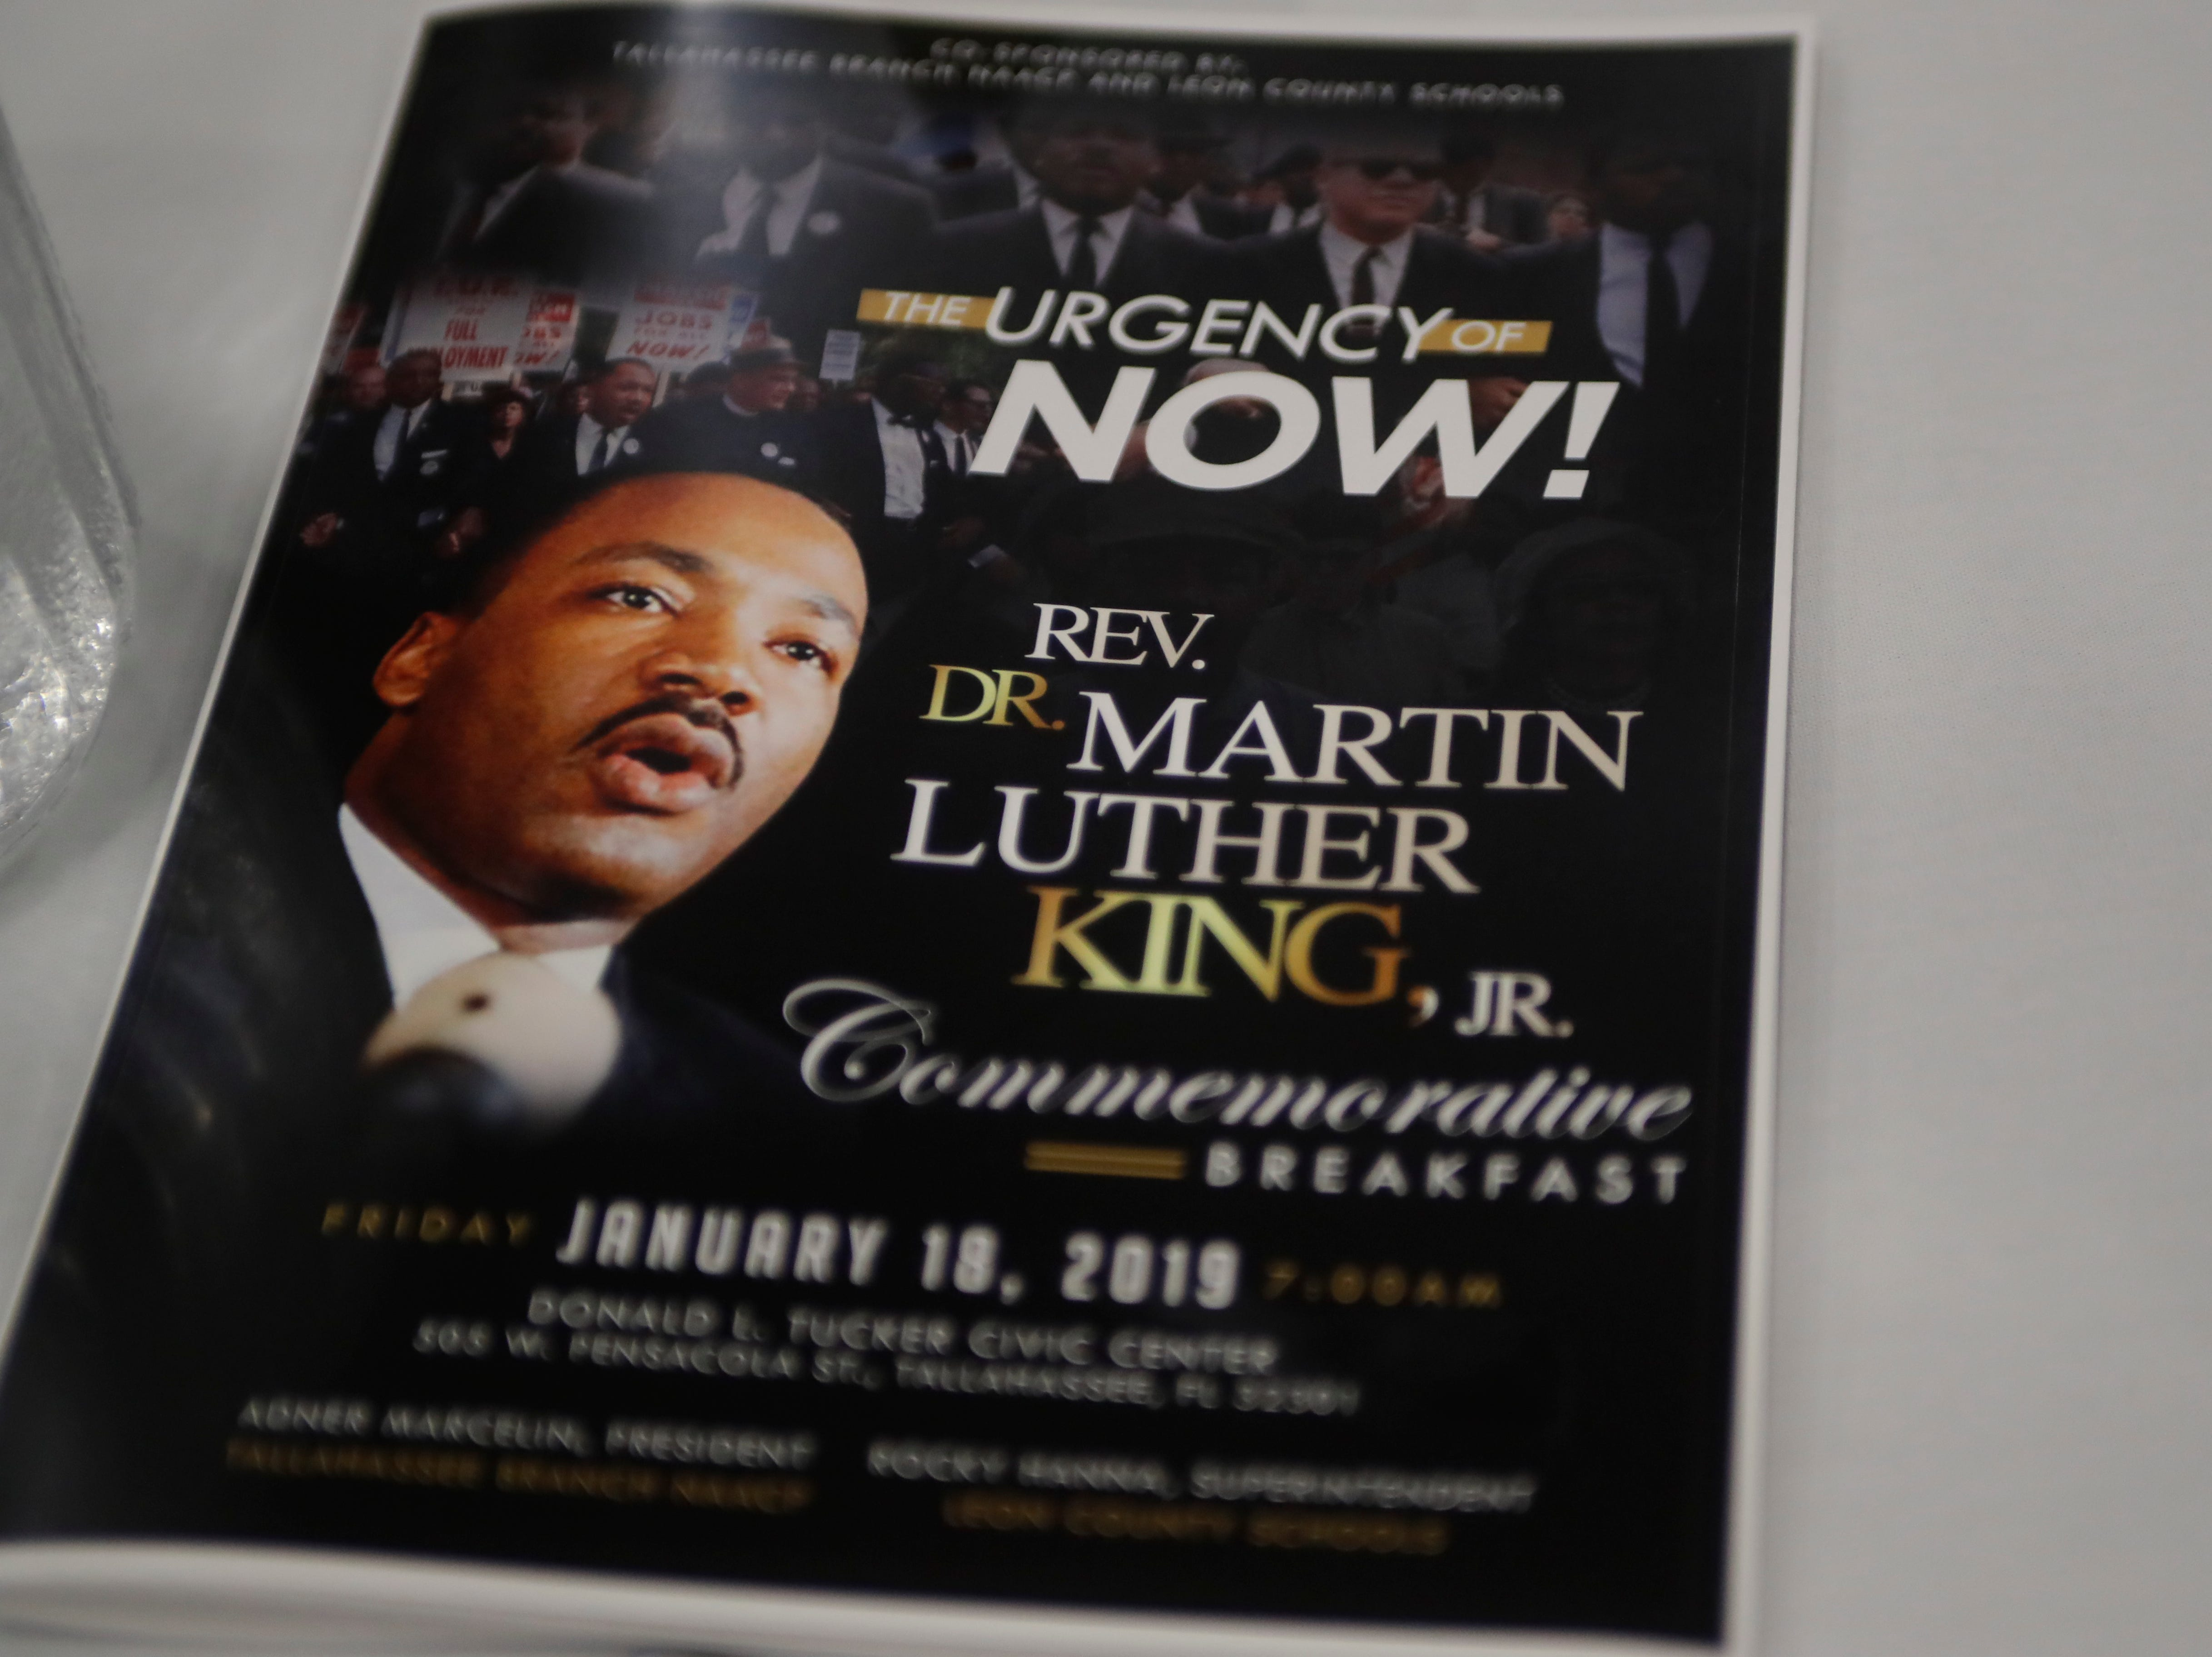 "The theme of Tallahassee's Martin Luther King Jr. commemorative breakfast was ""The Urgency of Now!"""